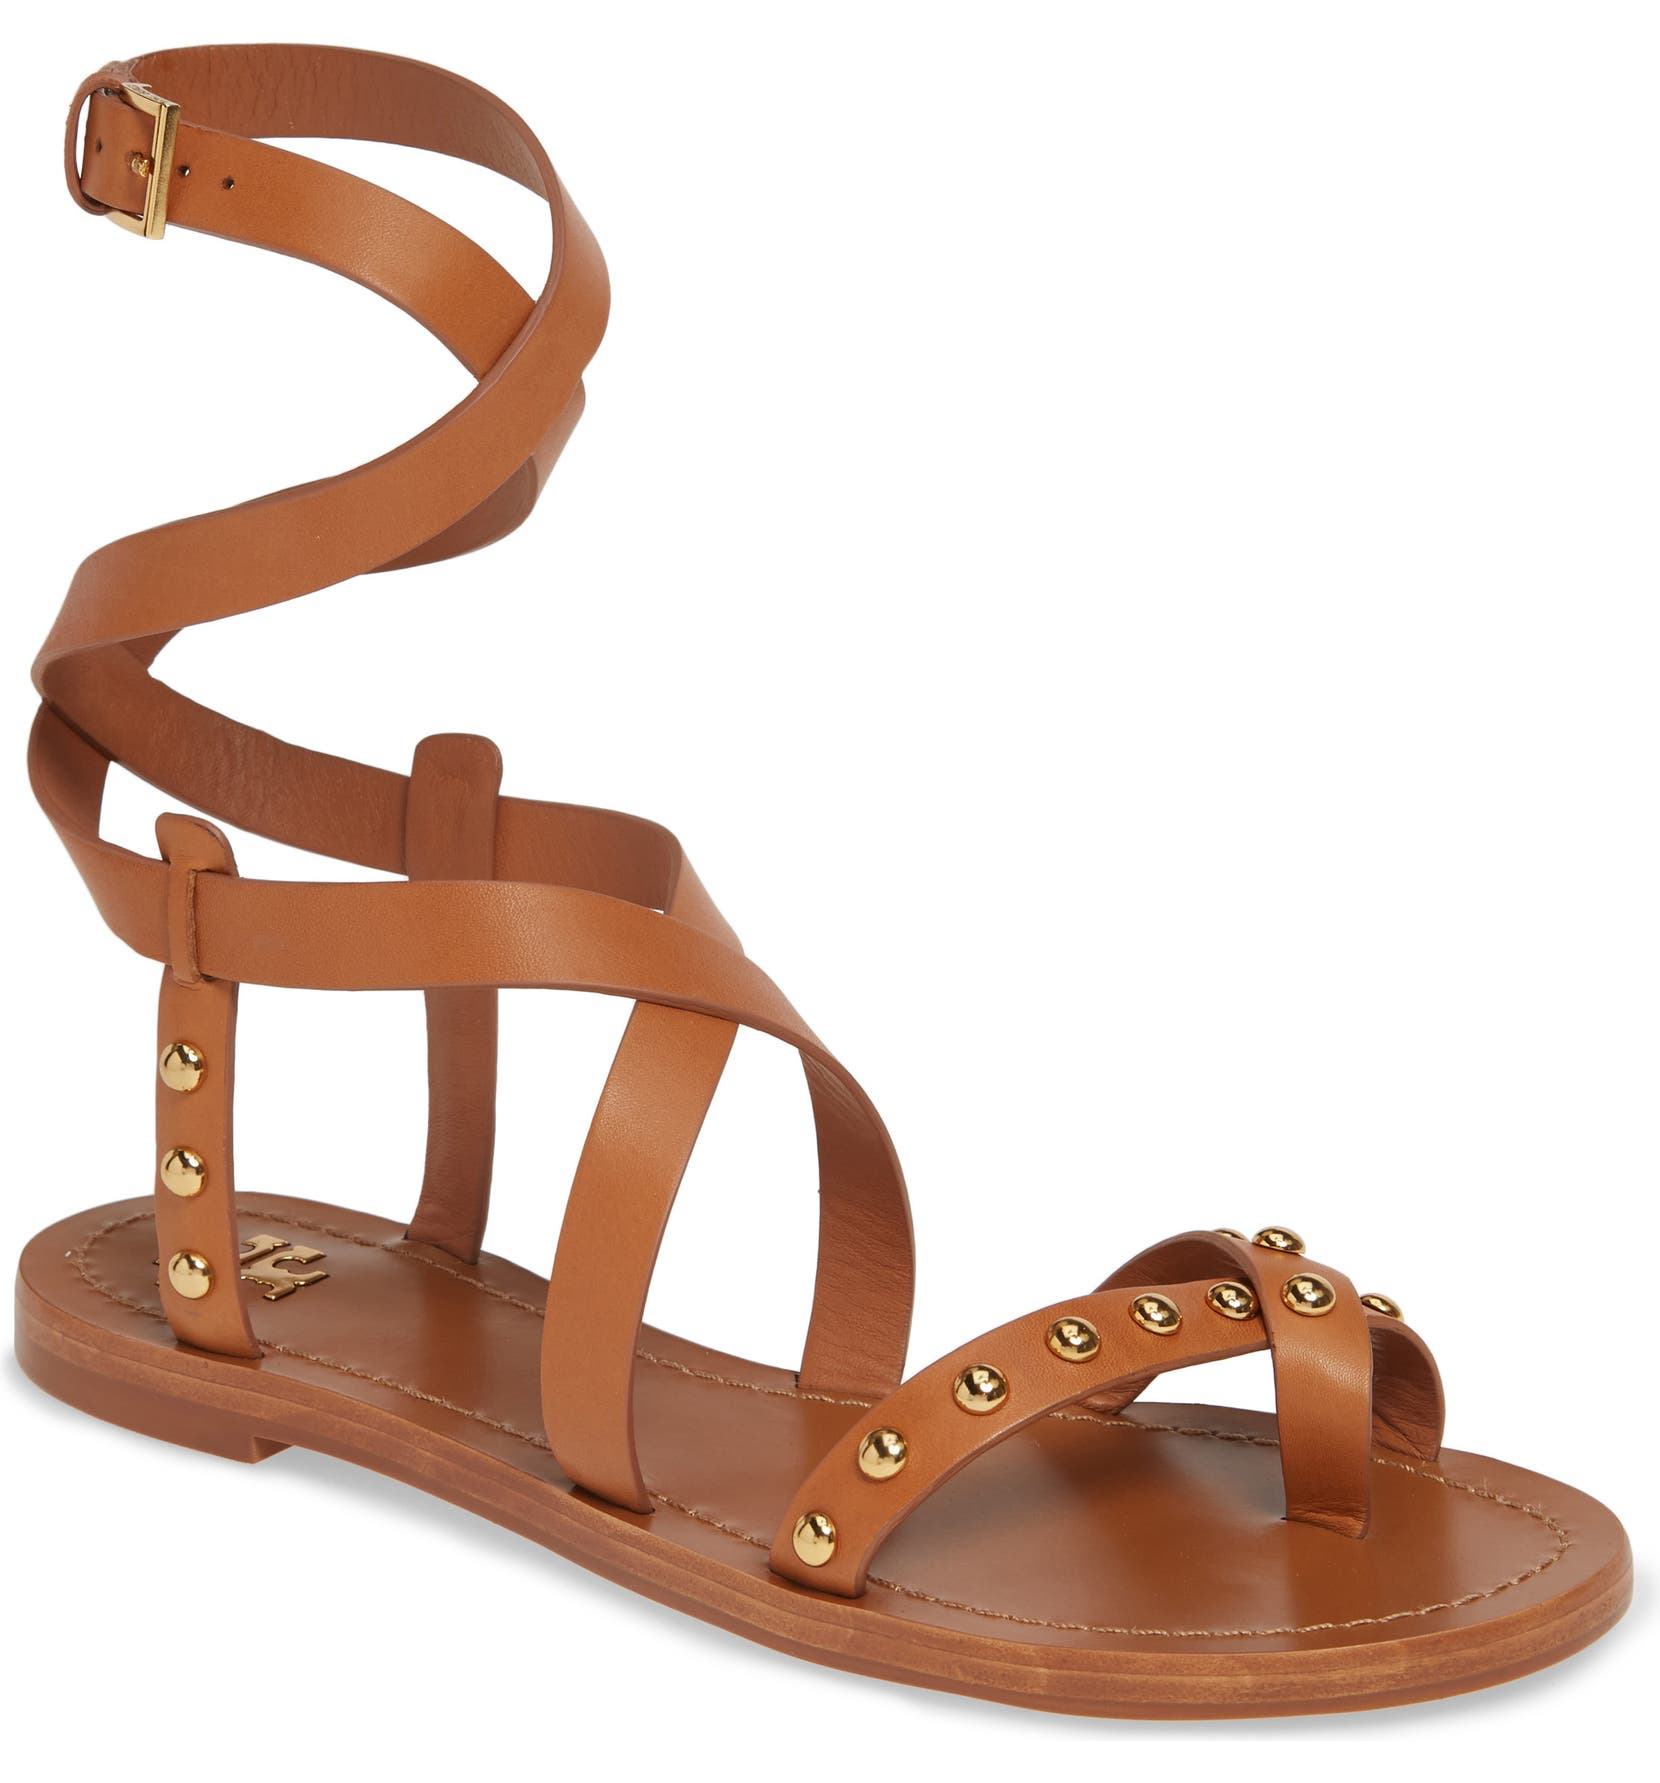 8a78df3d78e0 Tory Burch Ravello Studded Cage Sandal (Women)